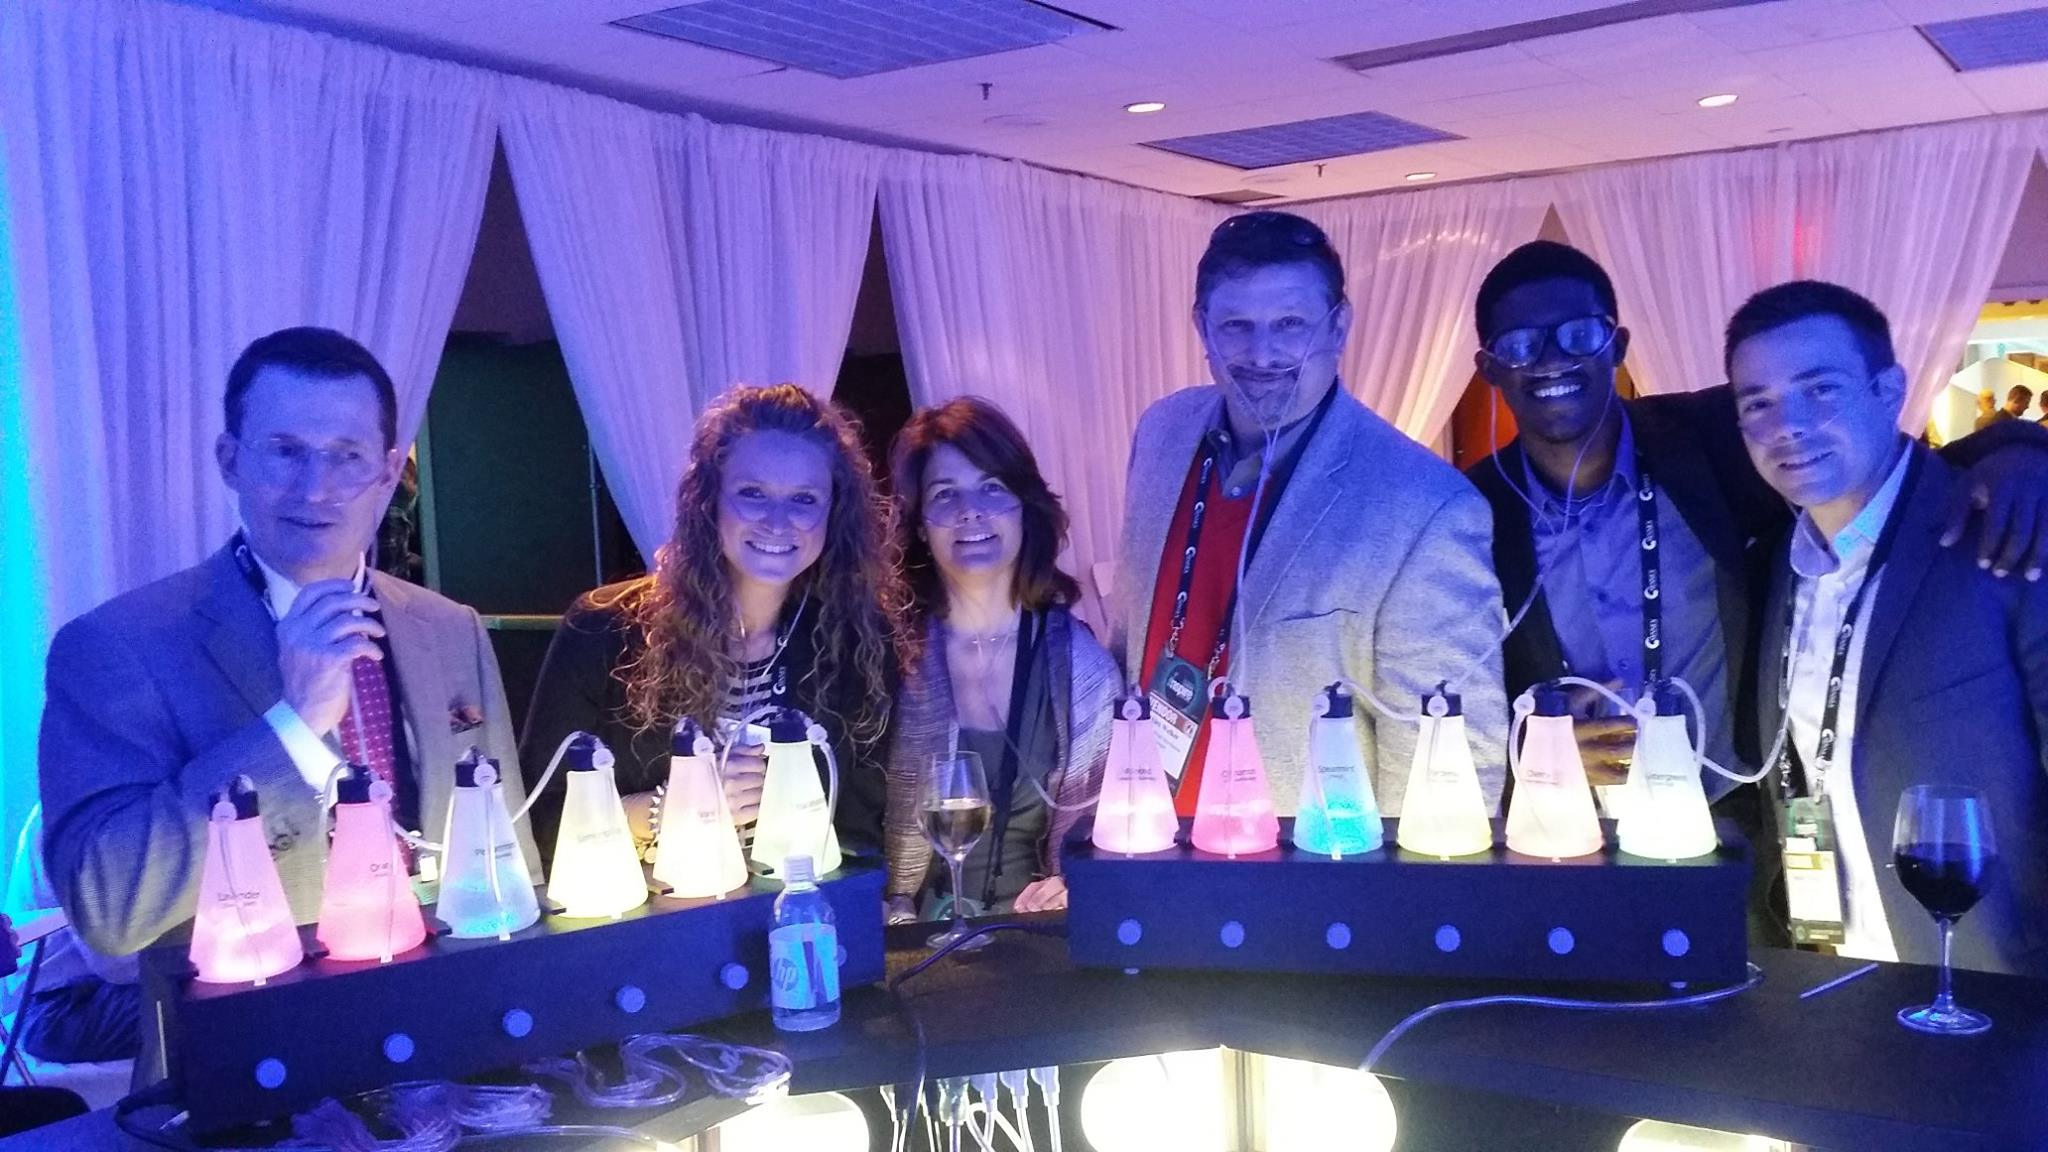 Event Planners Oxygen Bar